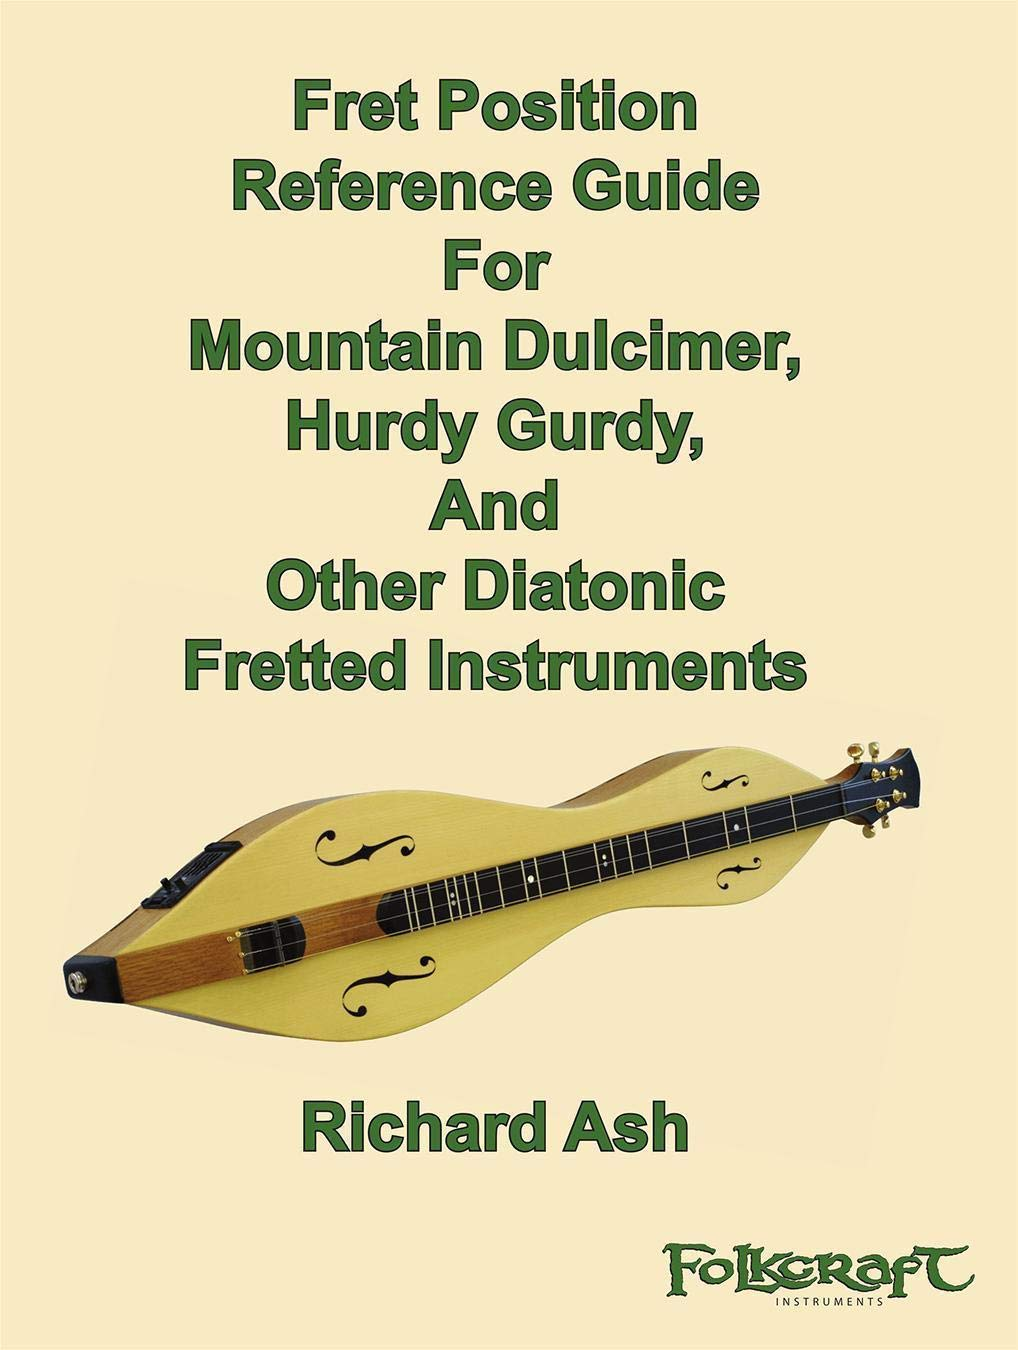 Fret Position Reference Guide For Mountain Dulcimer, Hurdy Gurdy, And Other Diatonic Instruments